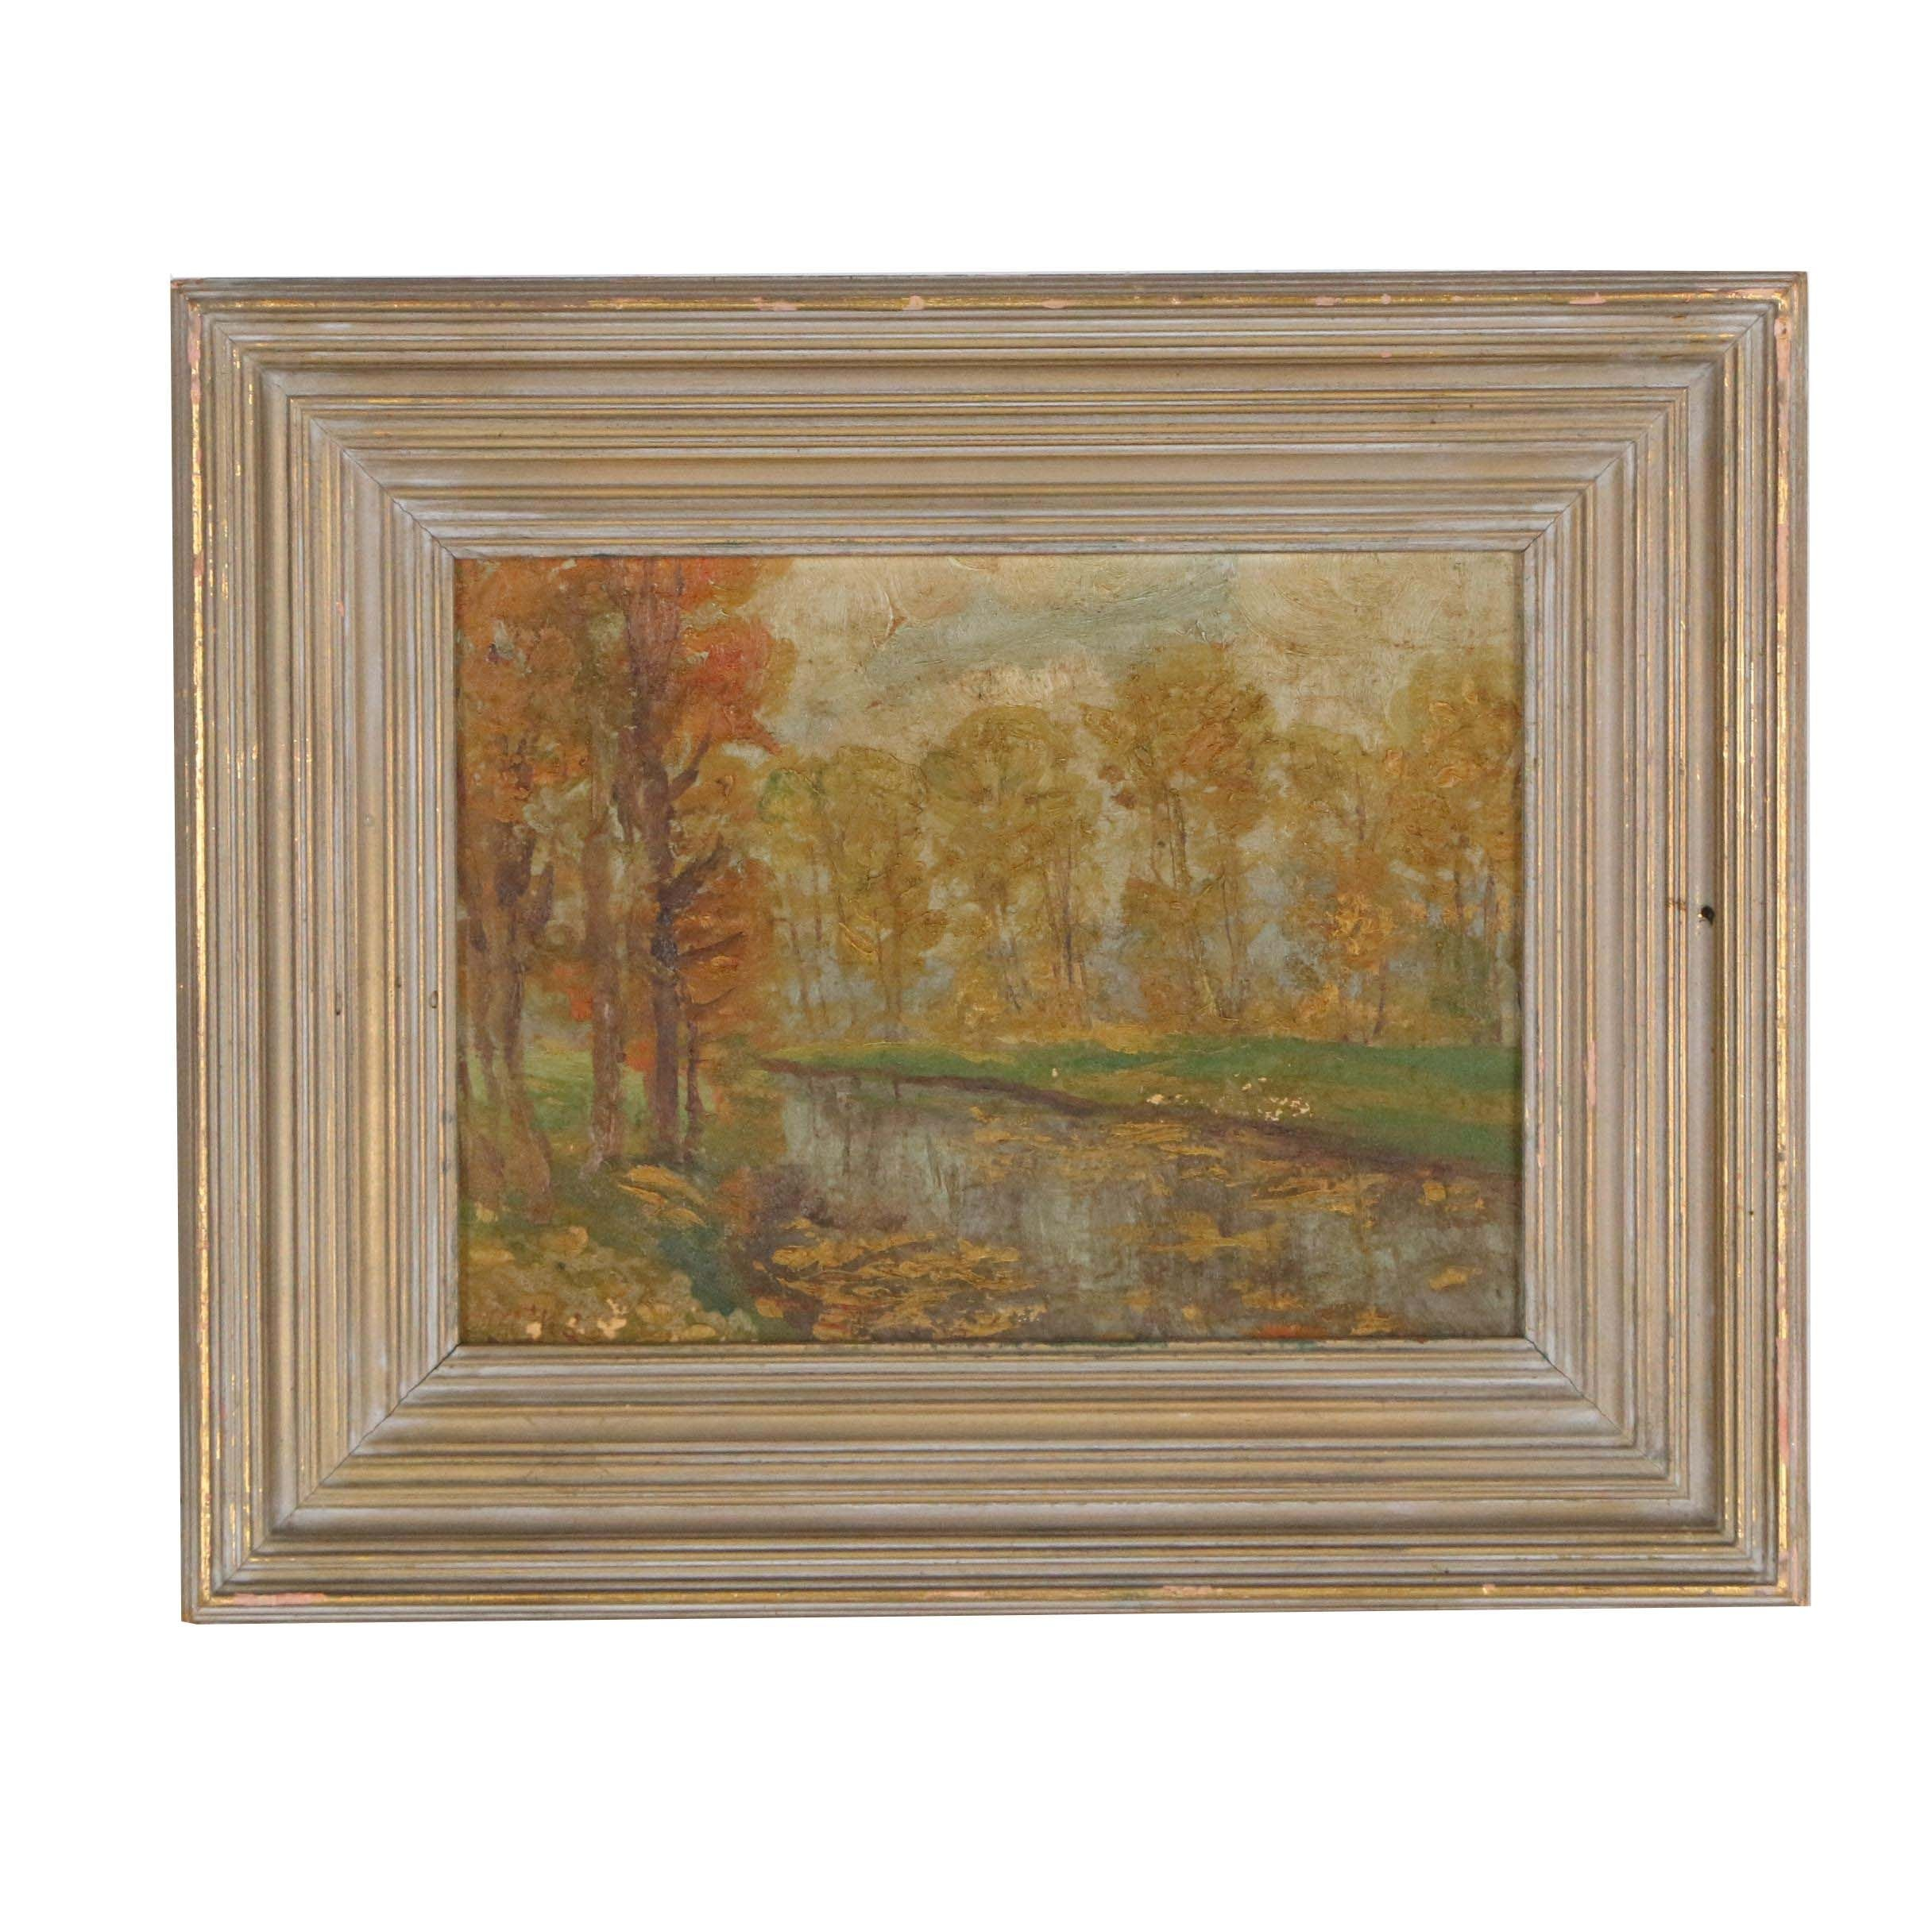 Mid 20th Century Oil Painting of Autumnal Landscape